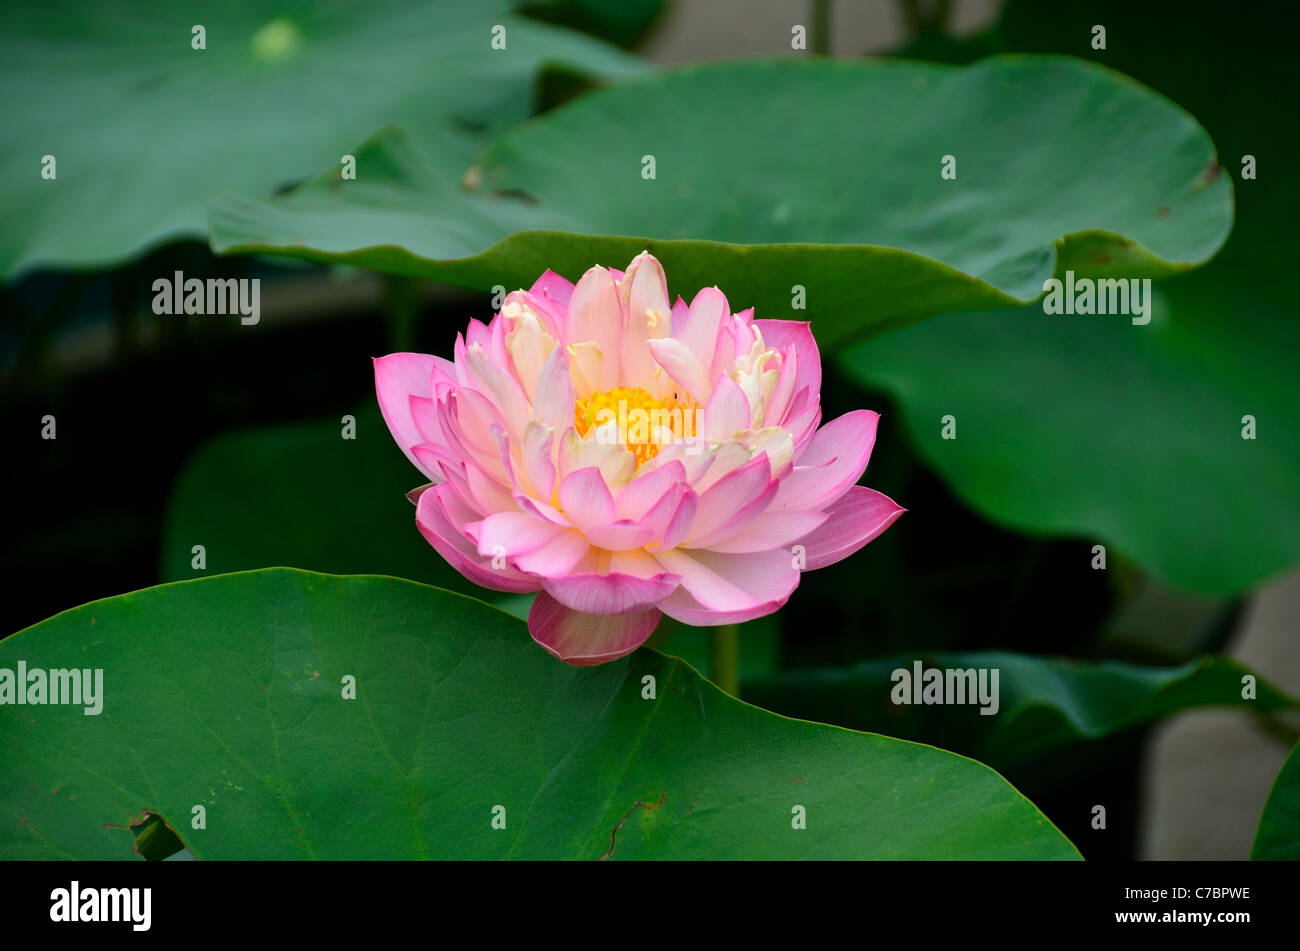 Pink Lotus Flower And Green Leaves Stock Photo 38982762 Alamy